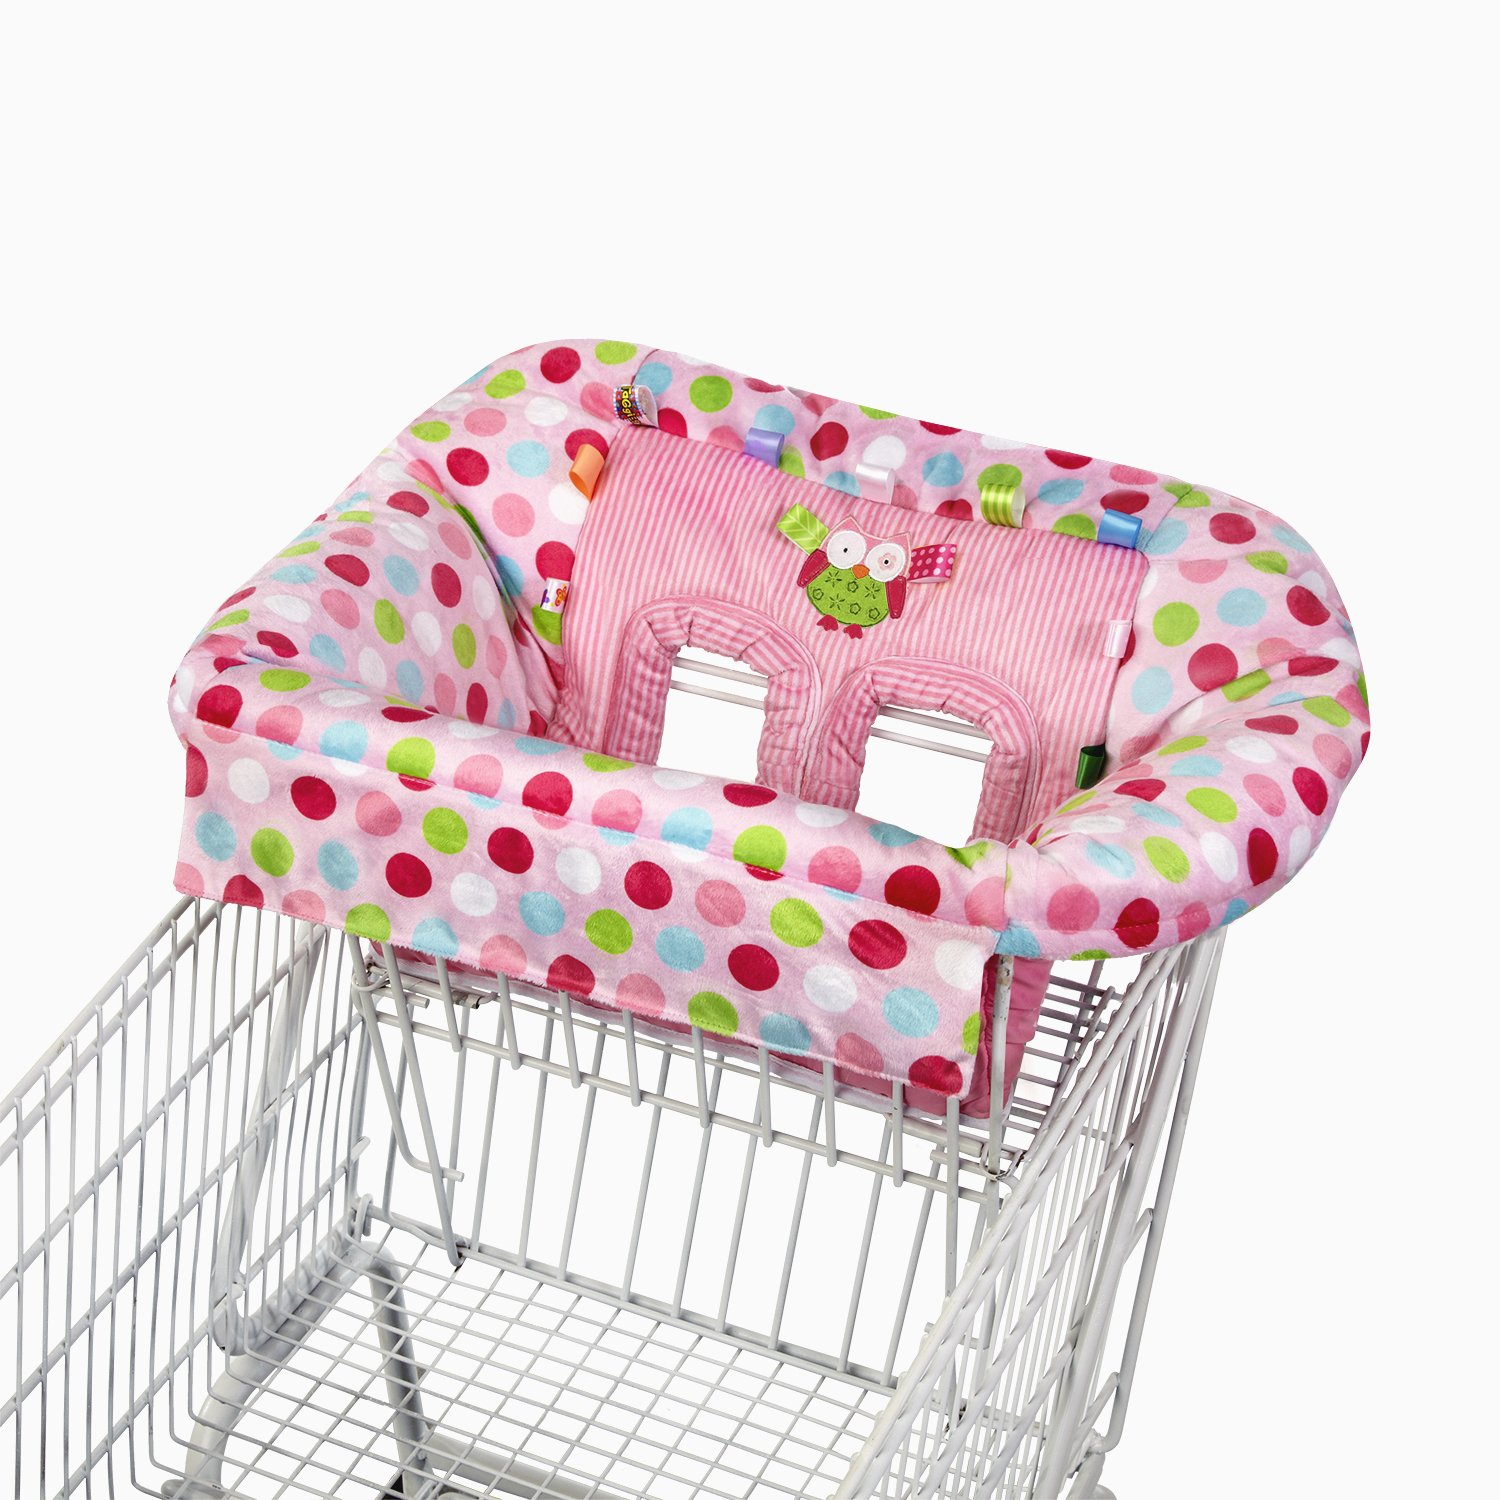 Owl High Chair Taggies Cozy Deluxe Pink Owl Polka Dot Travel Shopping